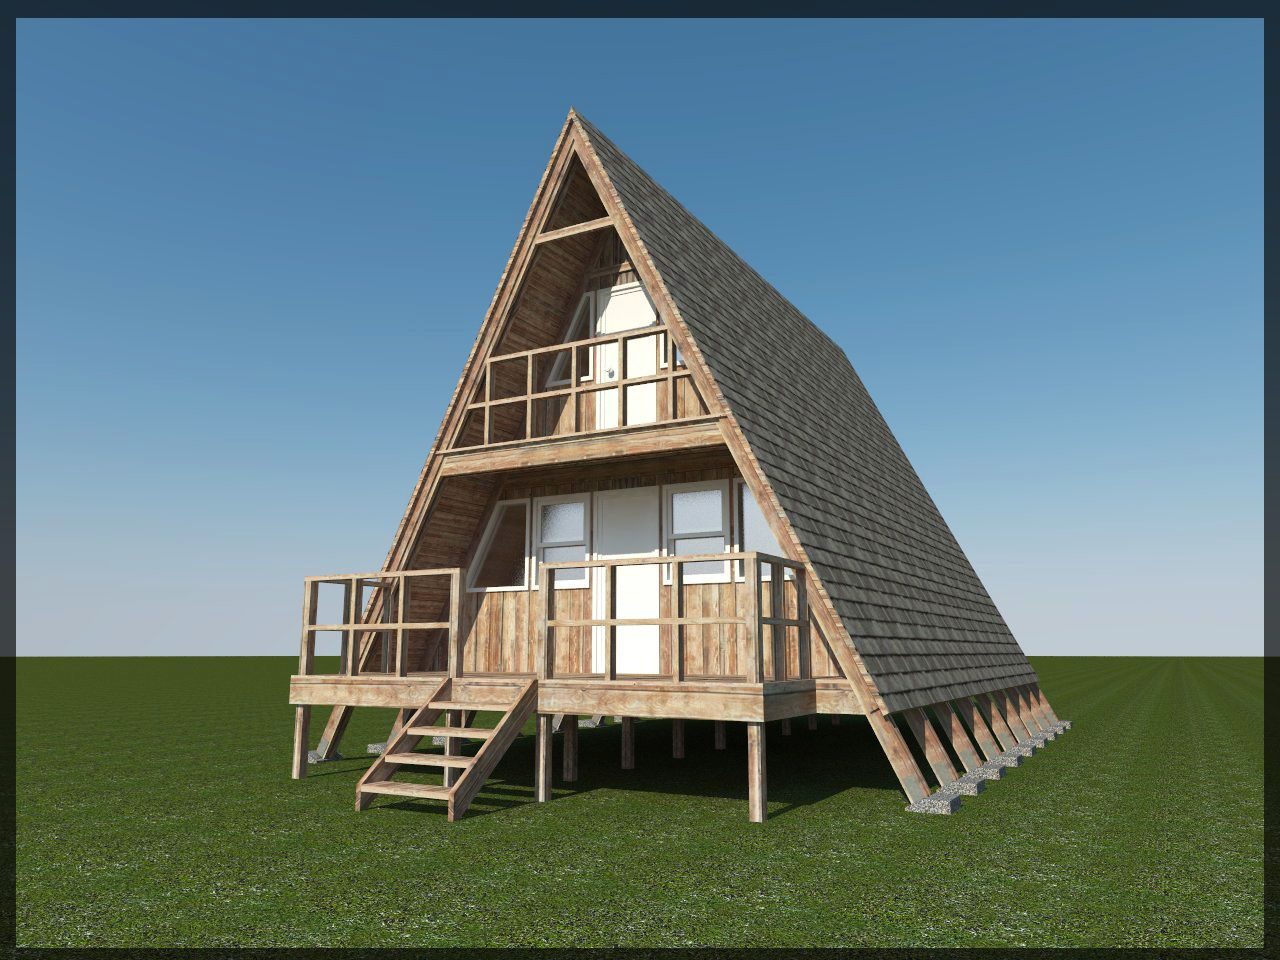 Build your own 24 x 21 a frame 2 story cabin diy plans